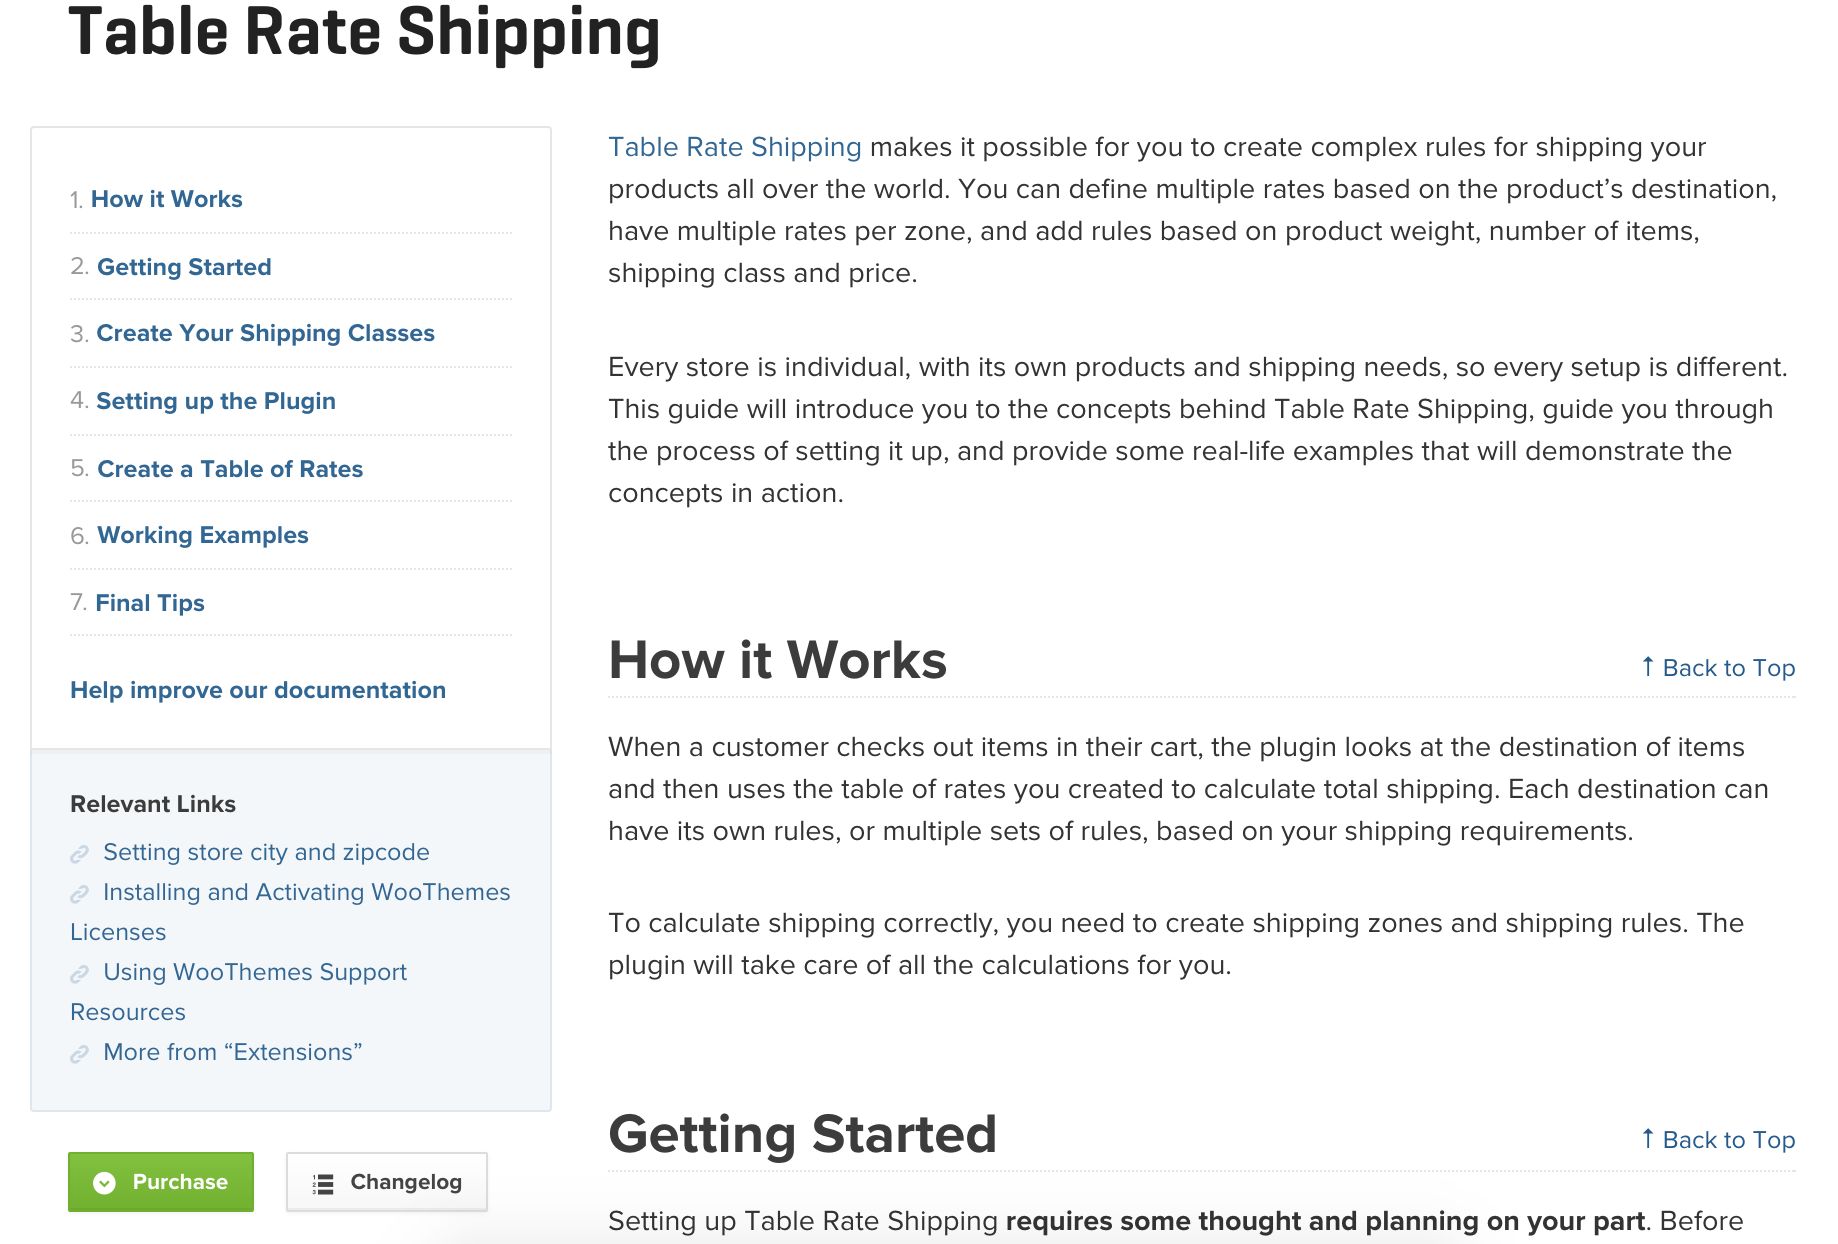 Here's an example from Table Rate Shipping.